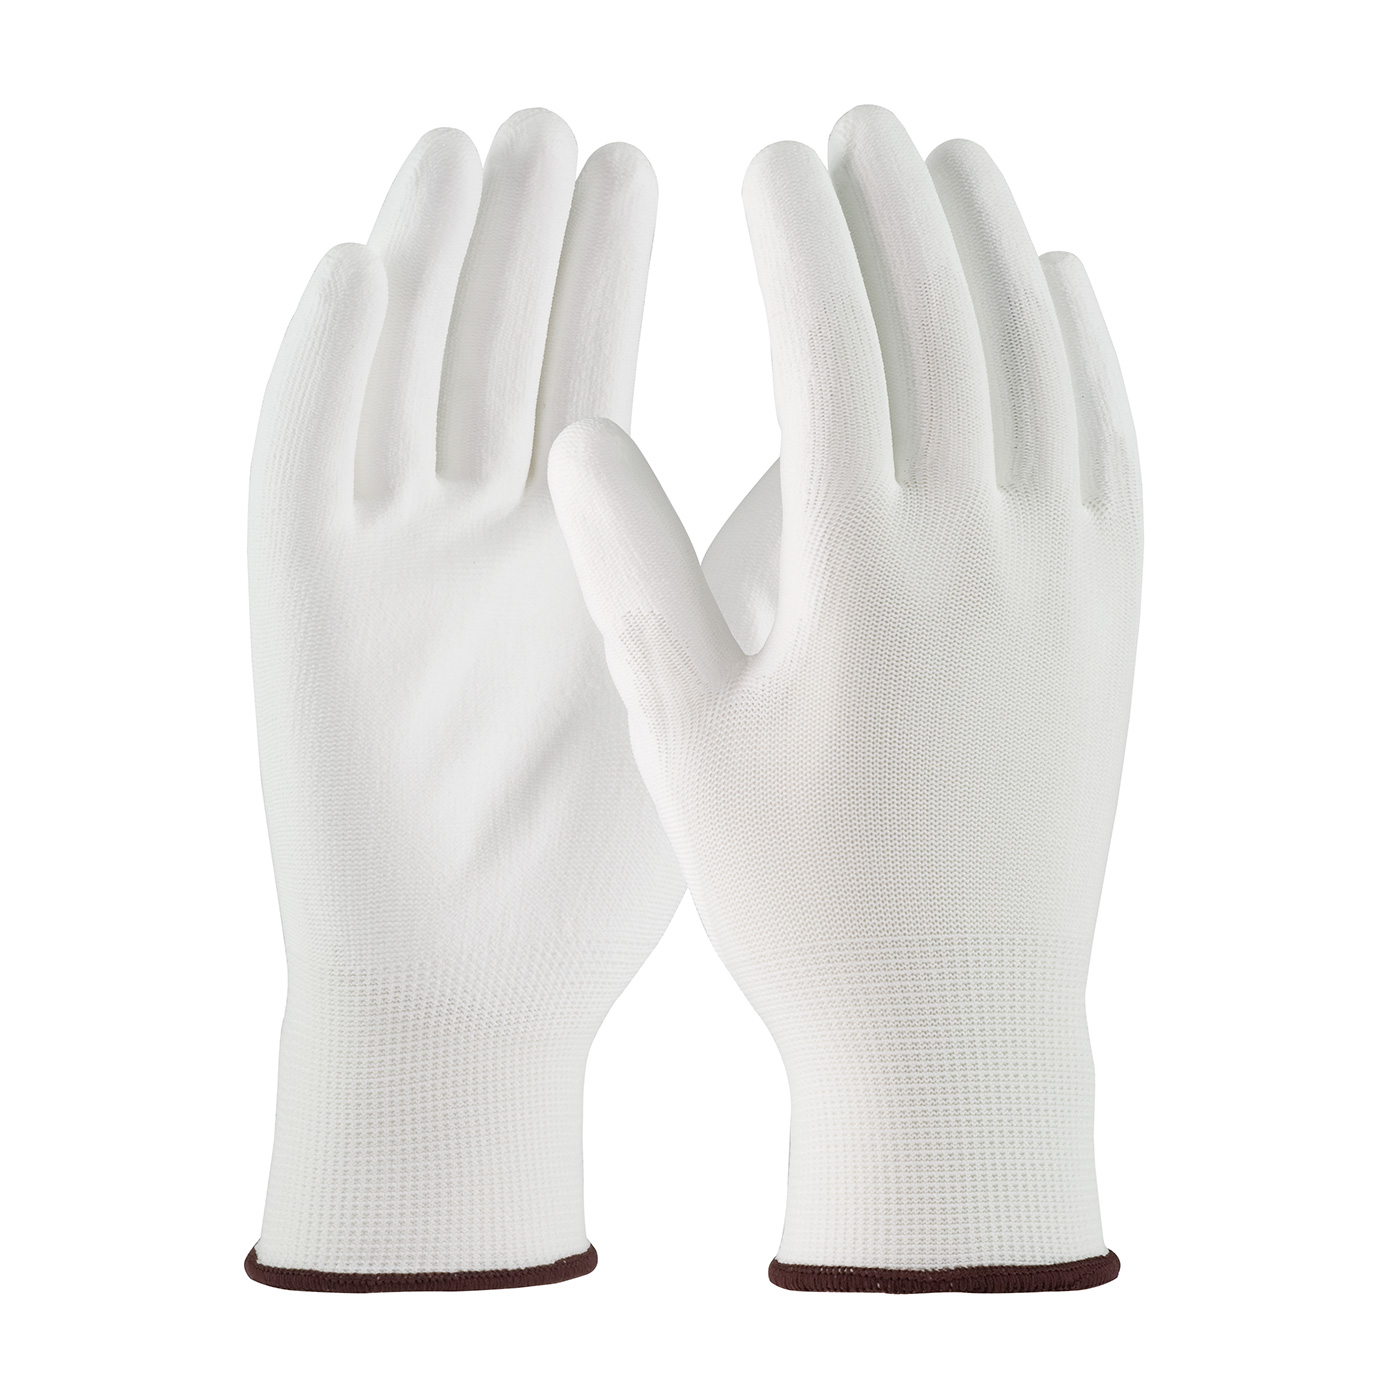 Seamless Knit Polyester Glove with Polyurethane Coated Smooth Grip on Palm & Fingers, White, M